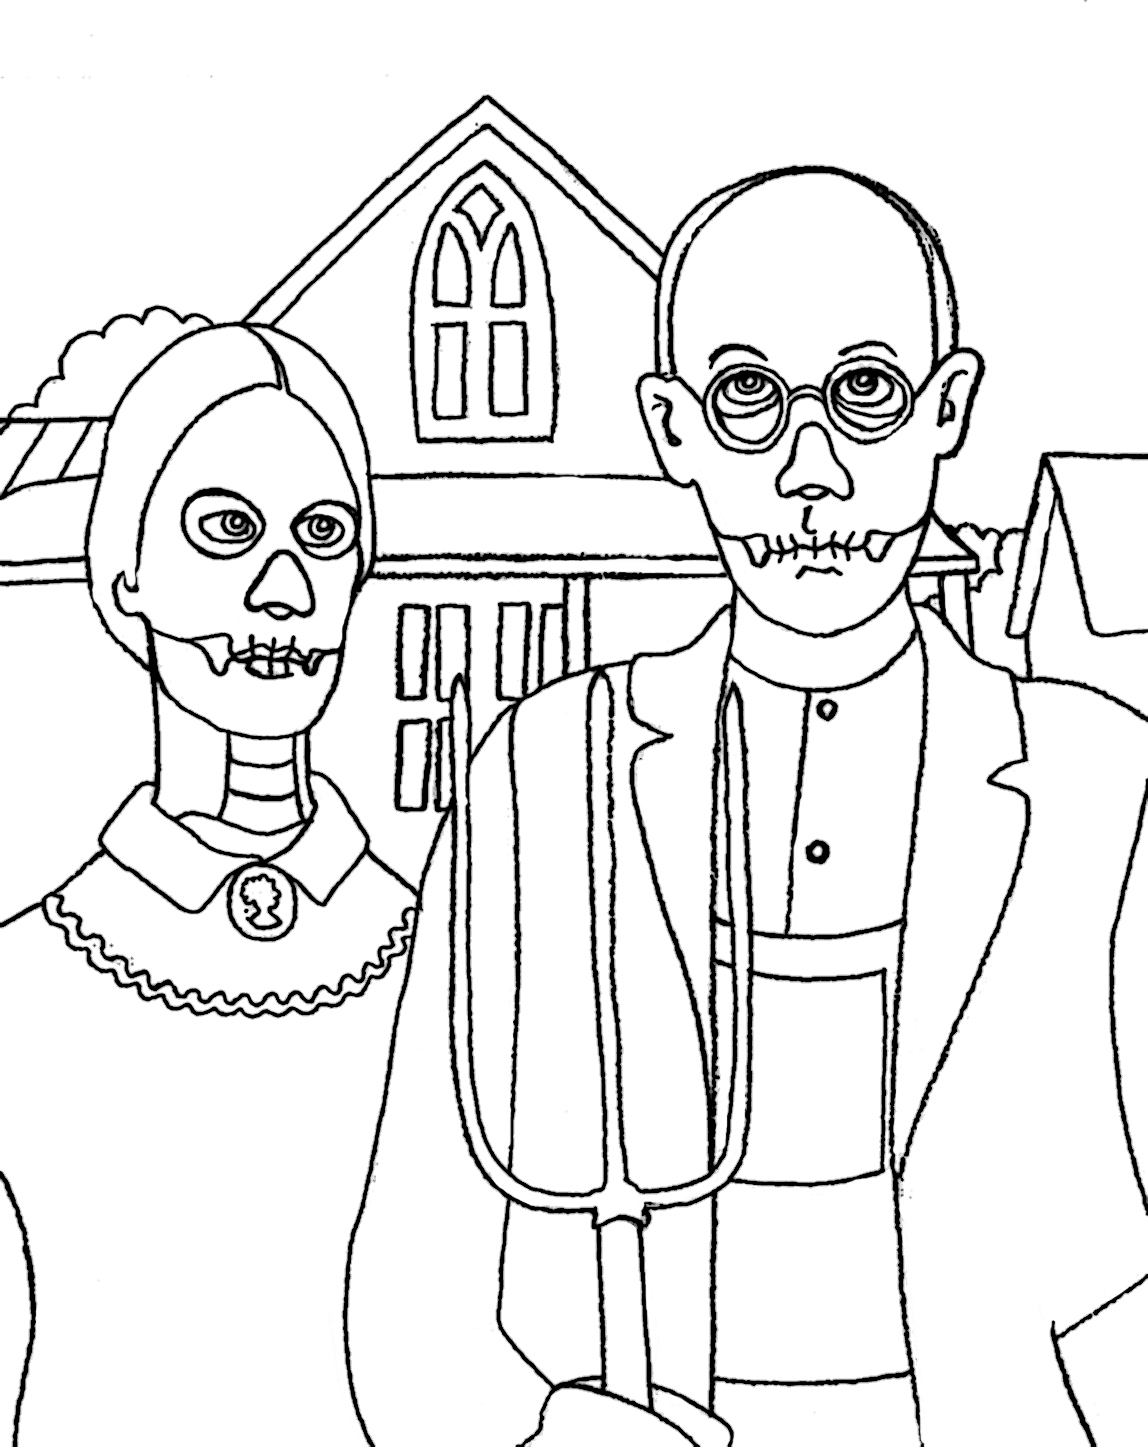 Yucca flats n m wenchkin 39 s coloring pages skeletal for American gothic coloring page